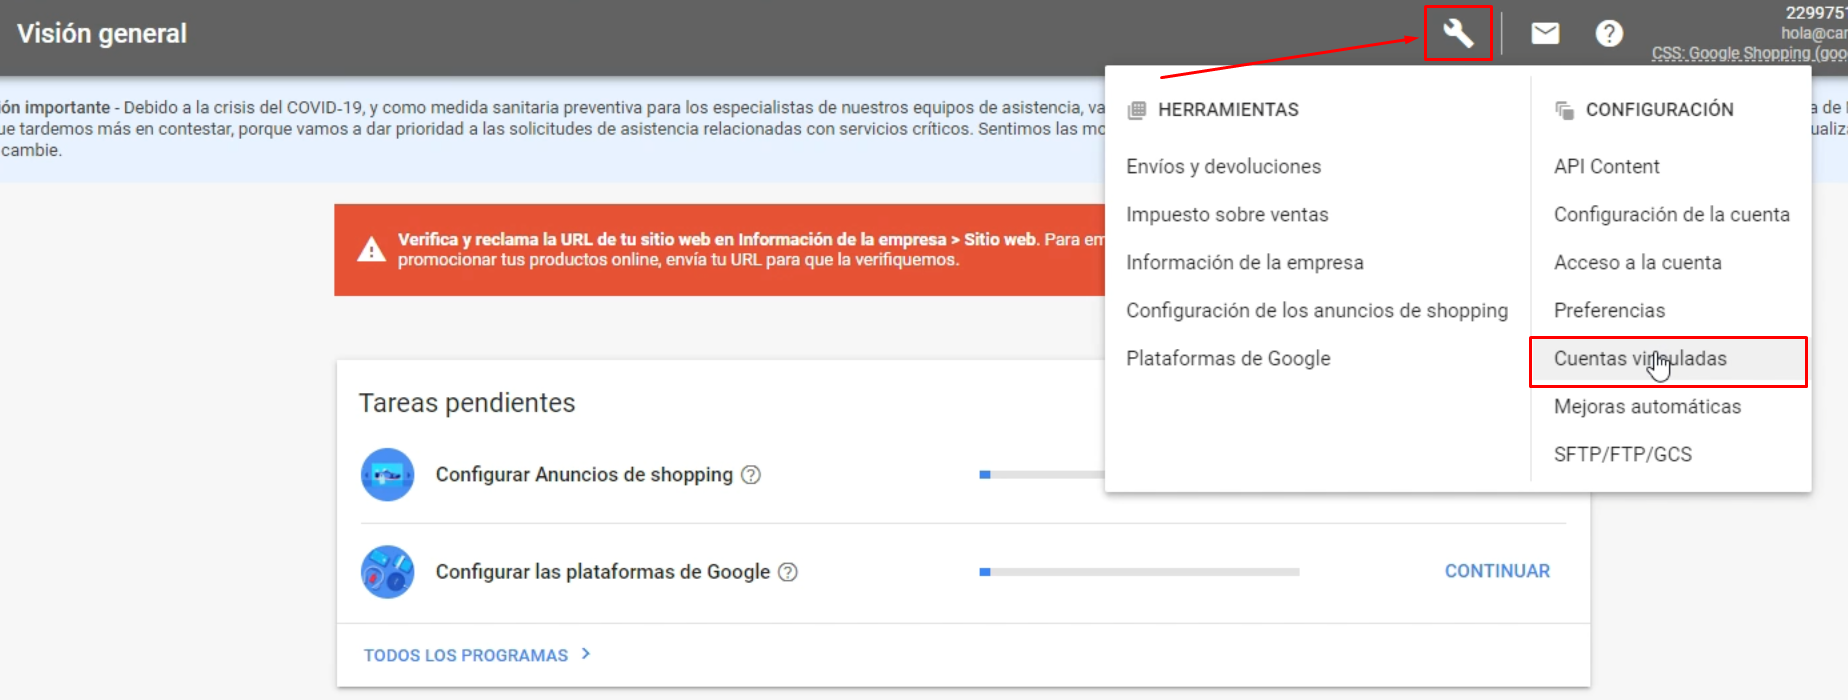 Cuentas vinculadas Google Merchant Center